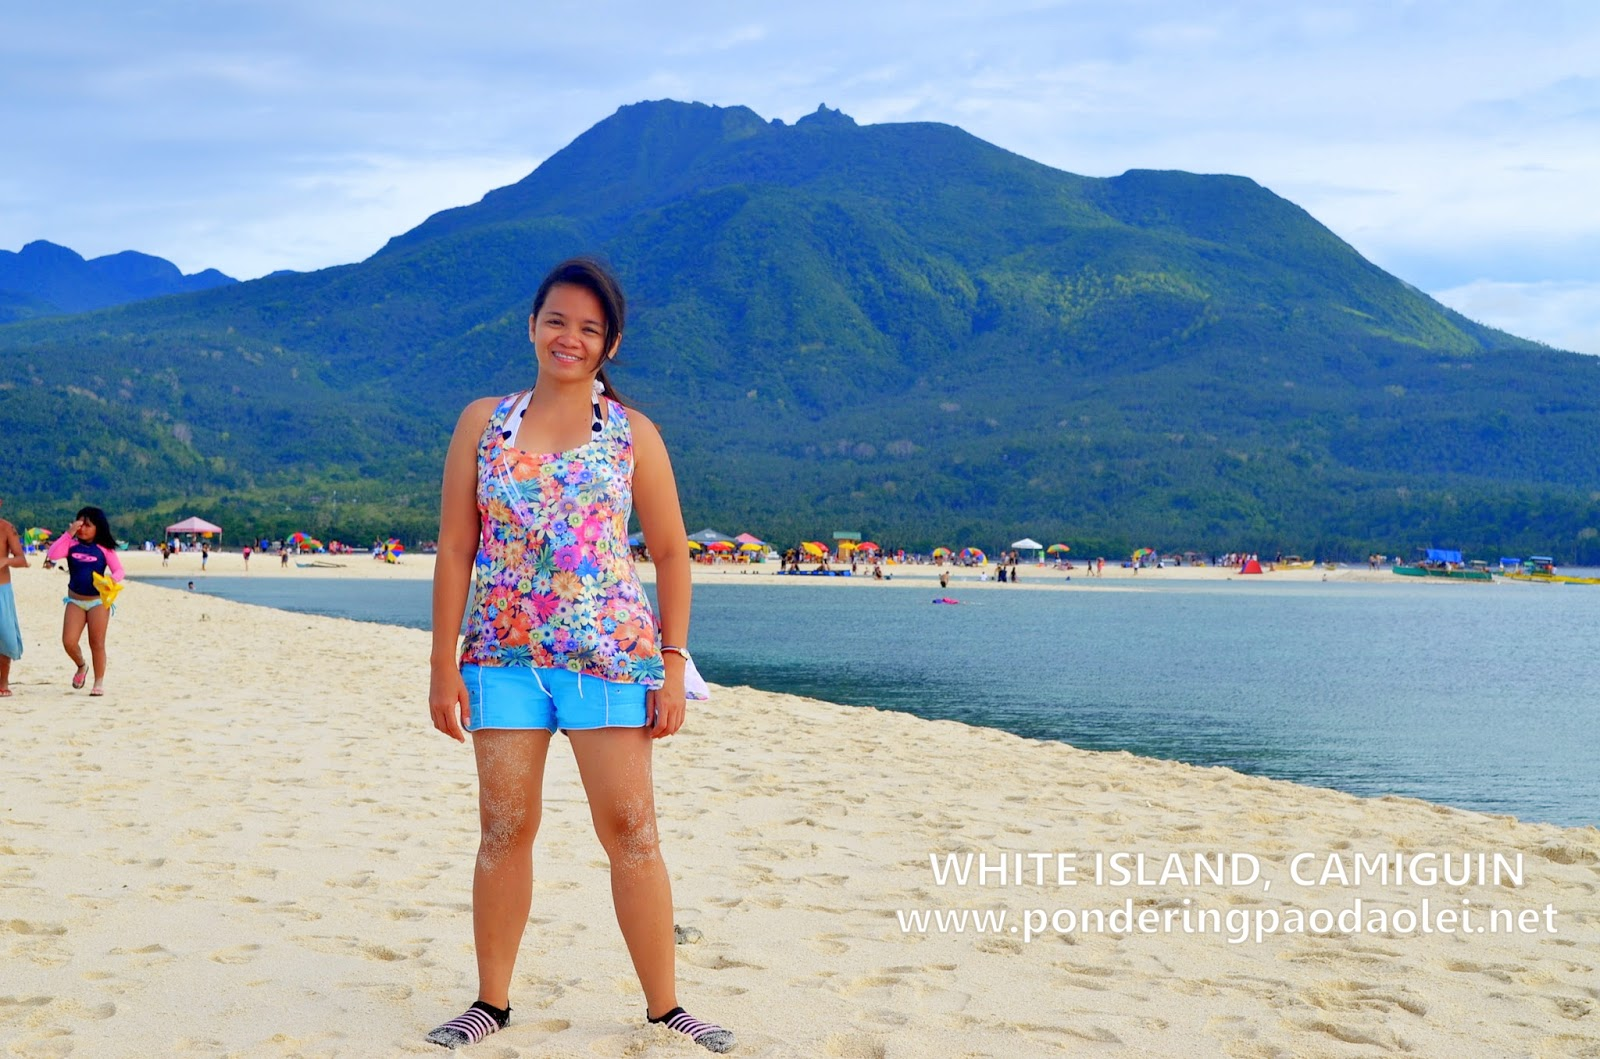 Camiguin: The Island Born of Fire